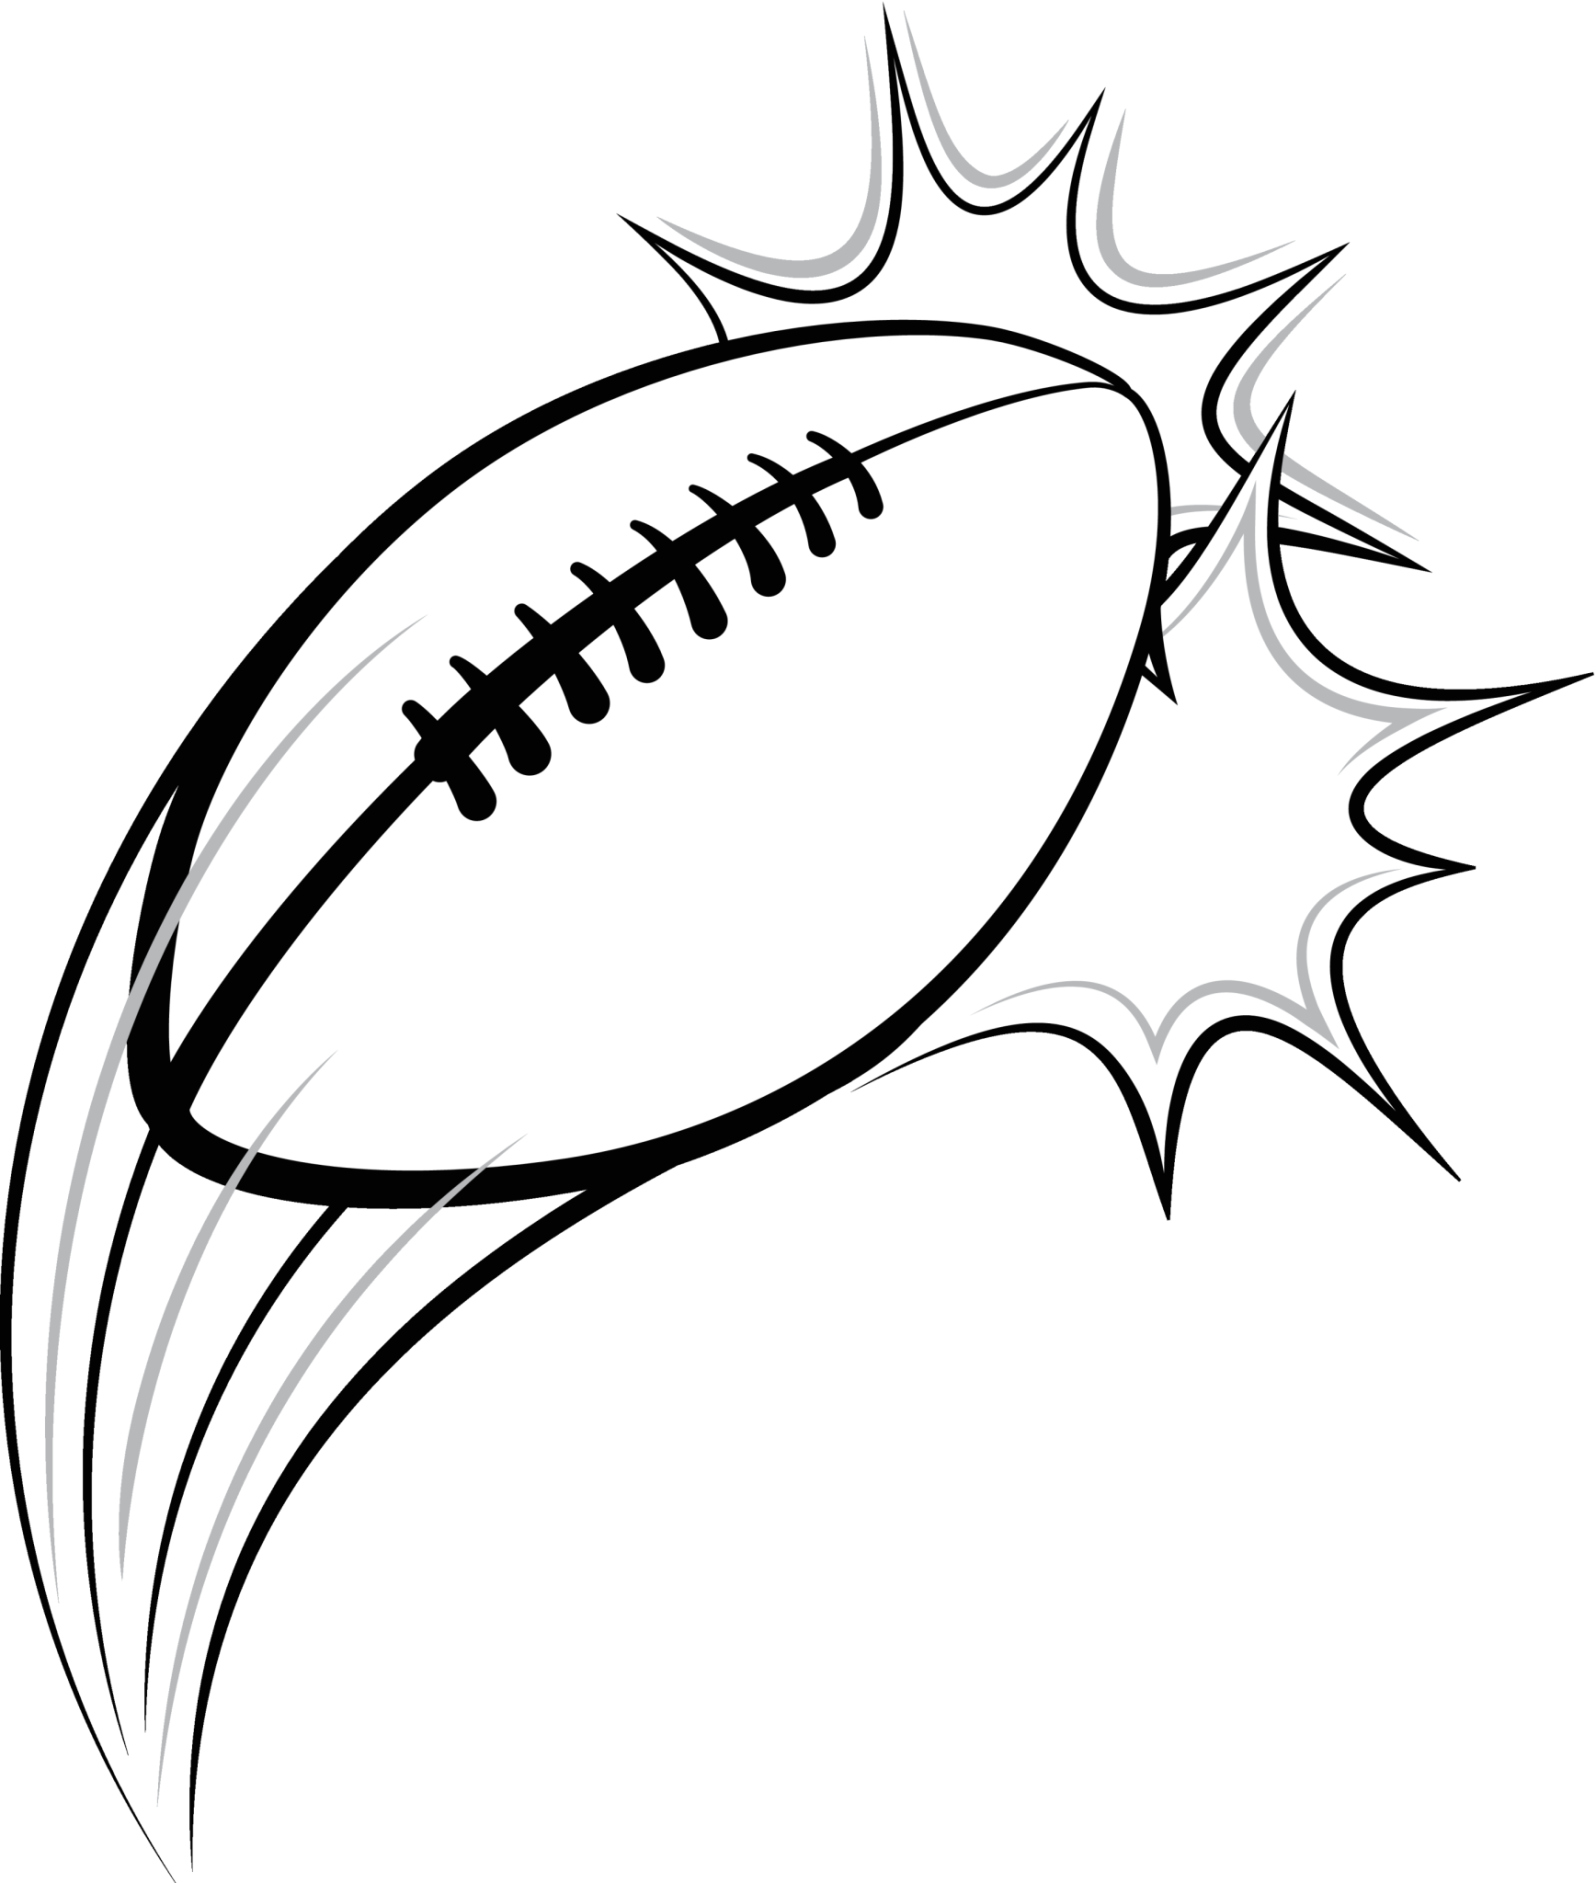 Free Drawing Of Football Download Free Clip Art Free